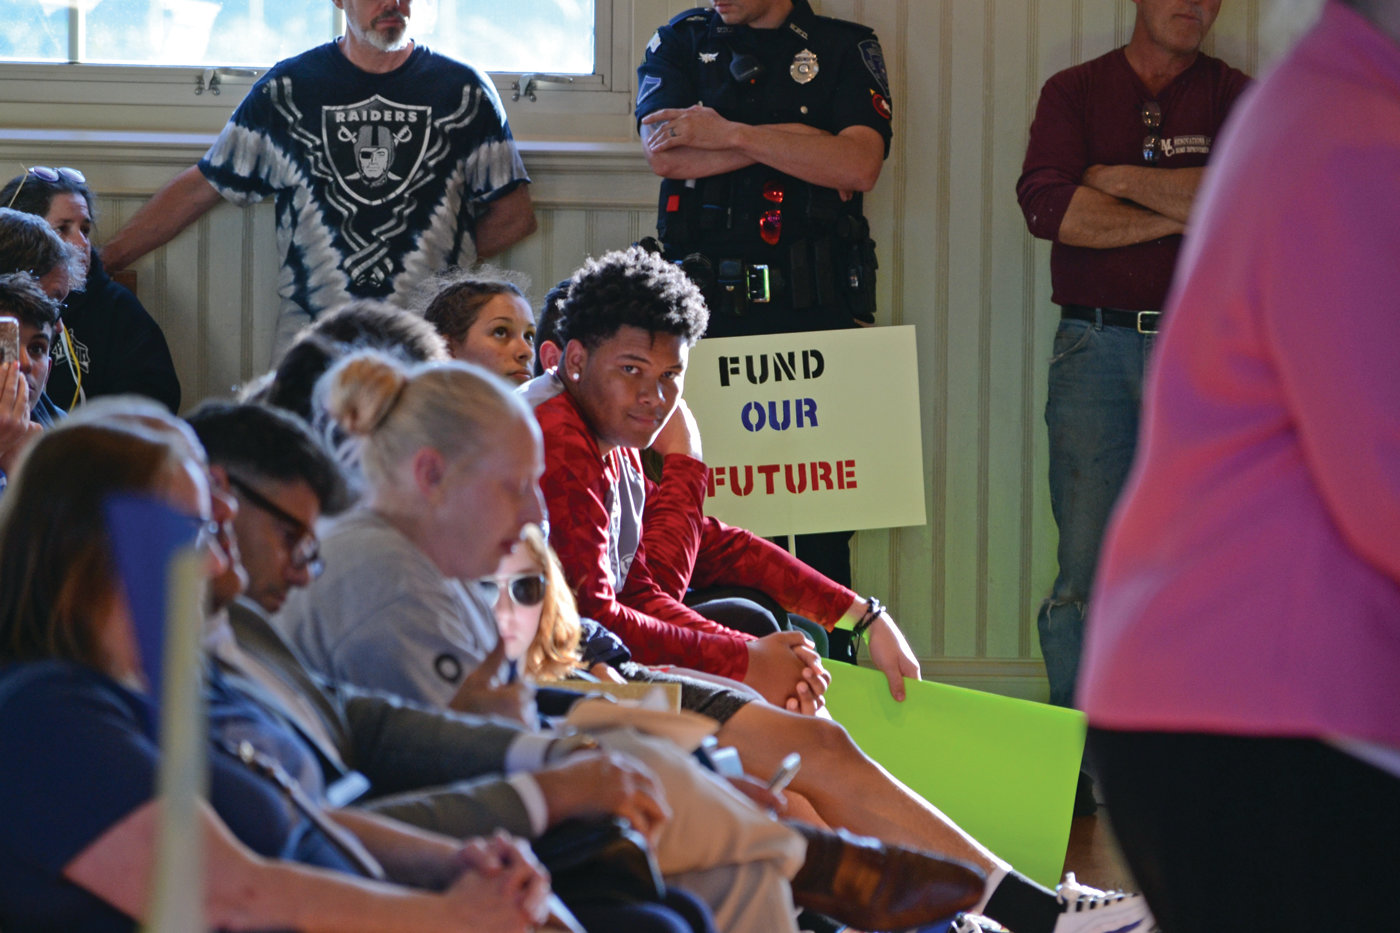 FUND OUR FUTURE: Another protest sign asked legislators to provide more funding to the Warwick School Department.